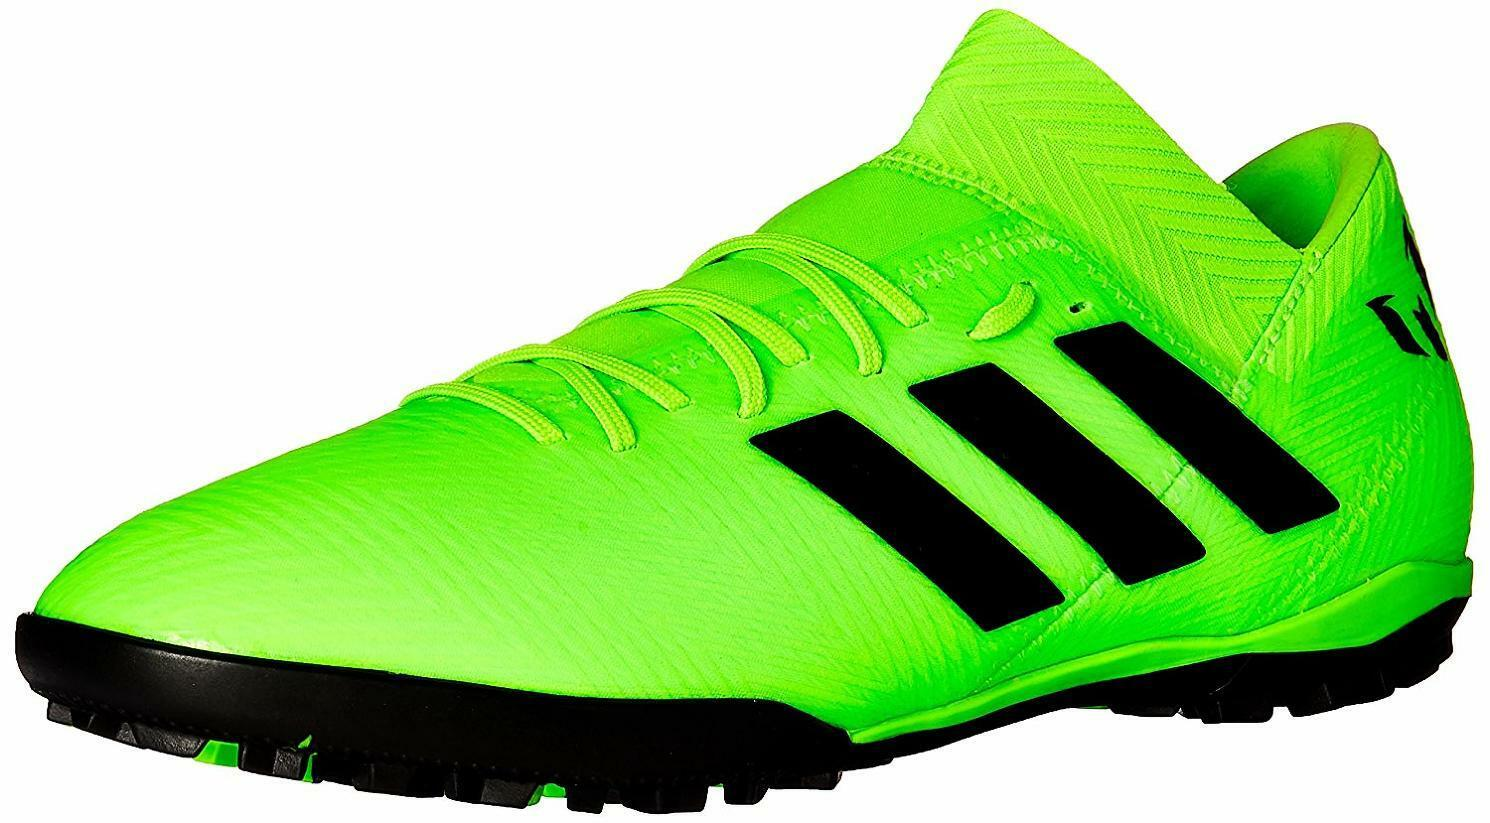 Adidas Originals Men's Nemeziz Messi Tango 18.3 Turf Soccer shoes,